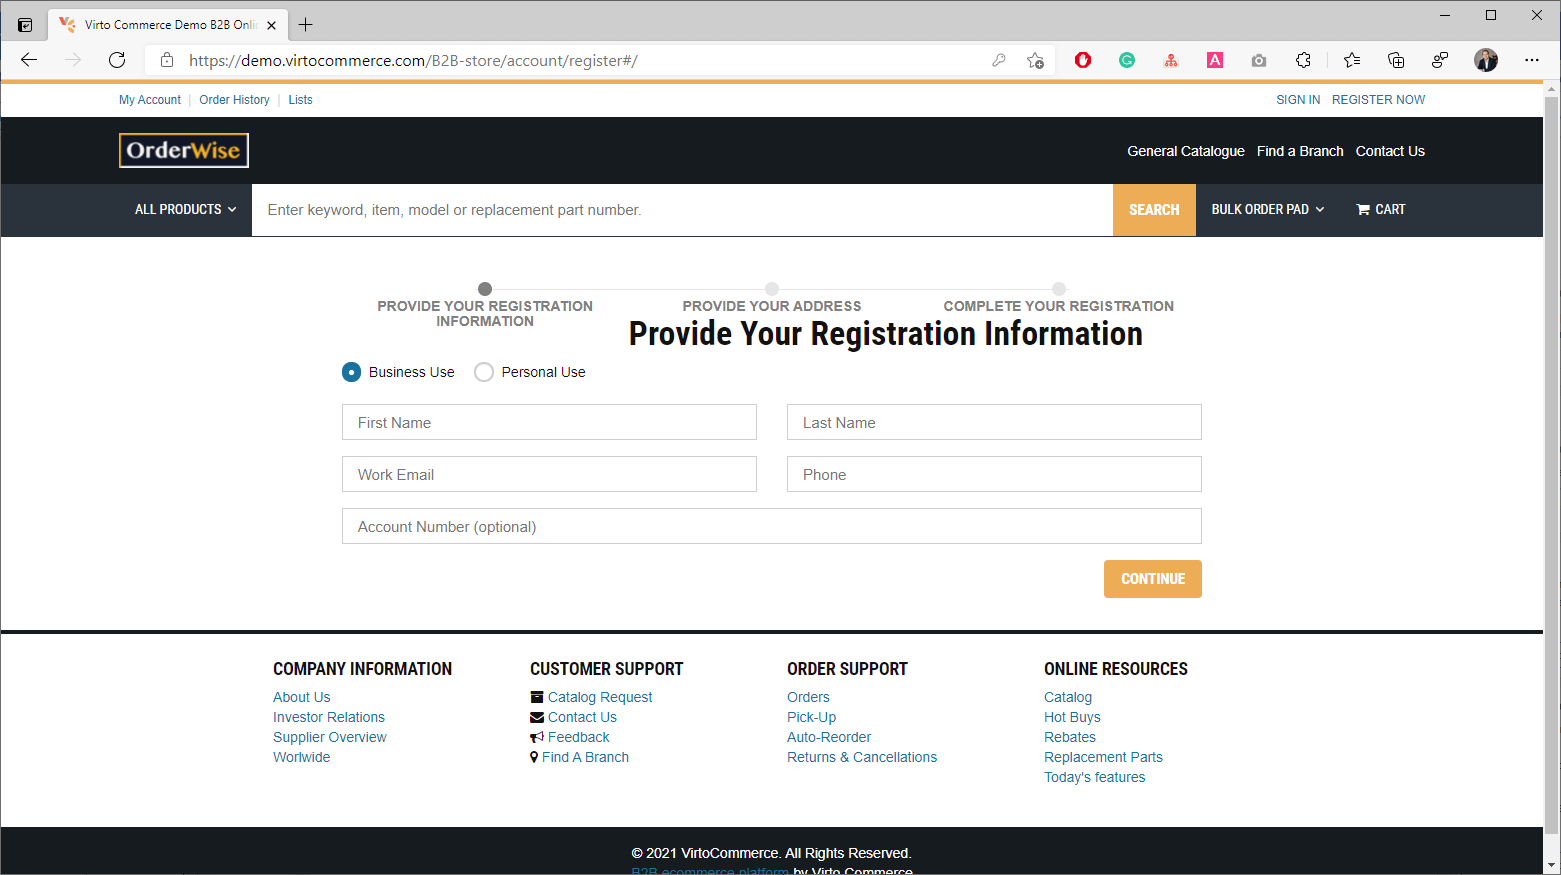 Virto Commerce demo portal with an example of a client's registration